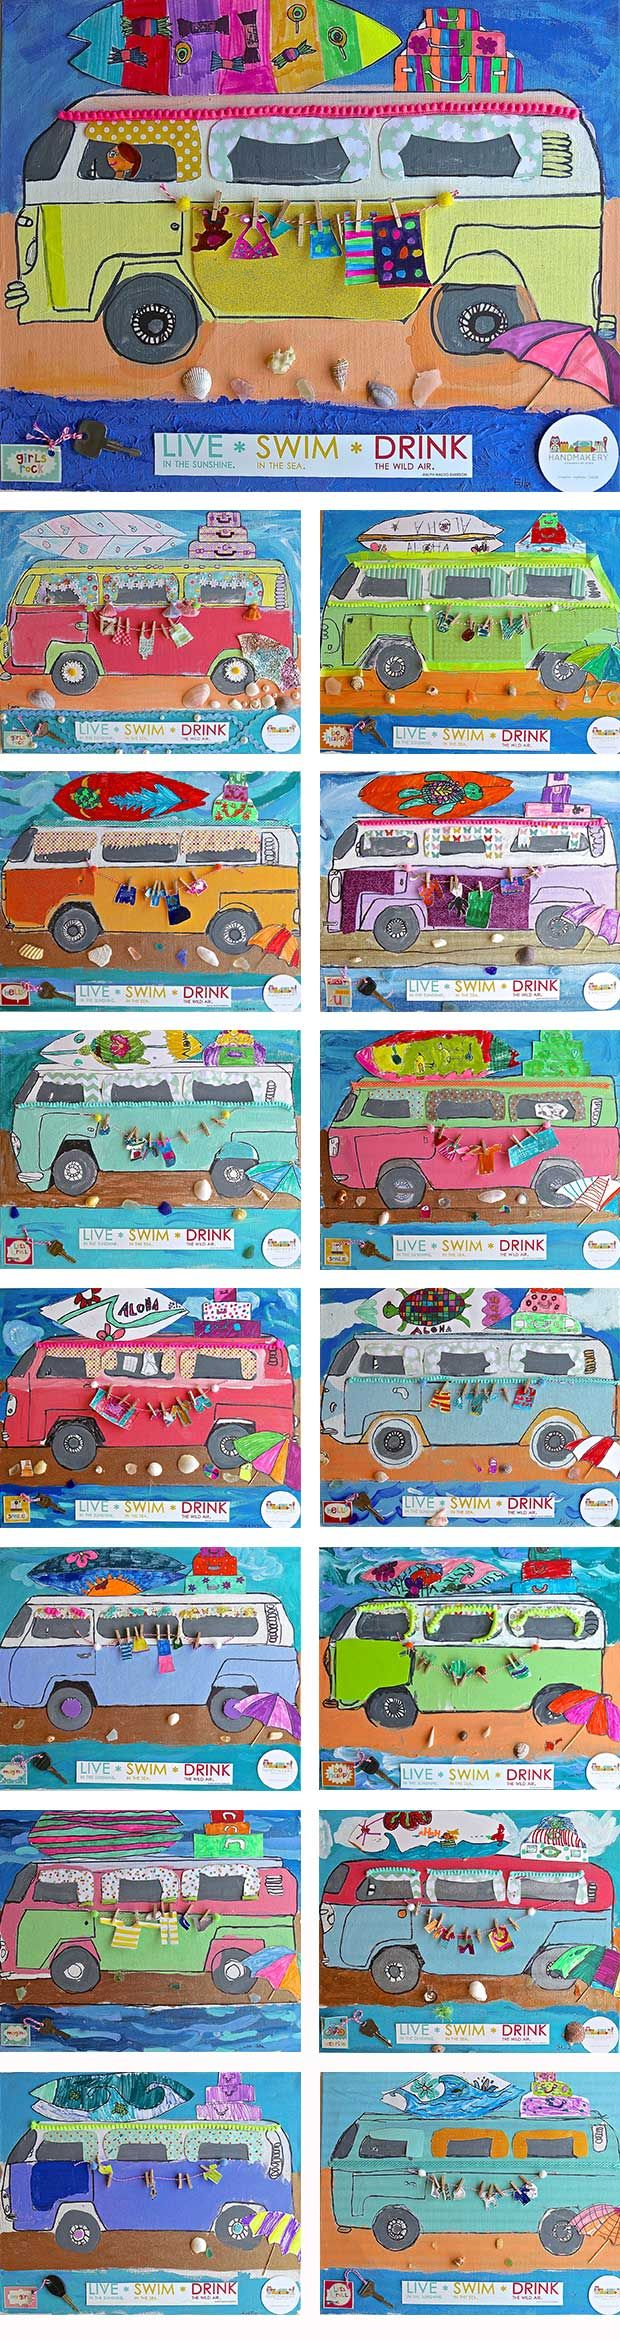 Camper Vans On Canvas